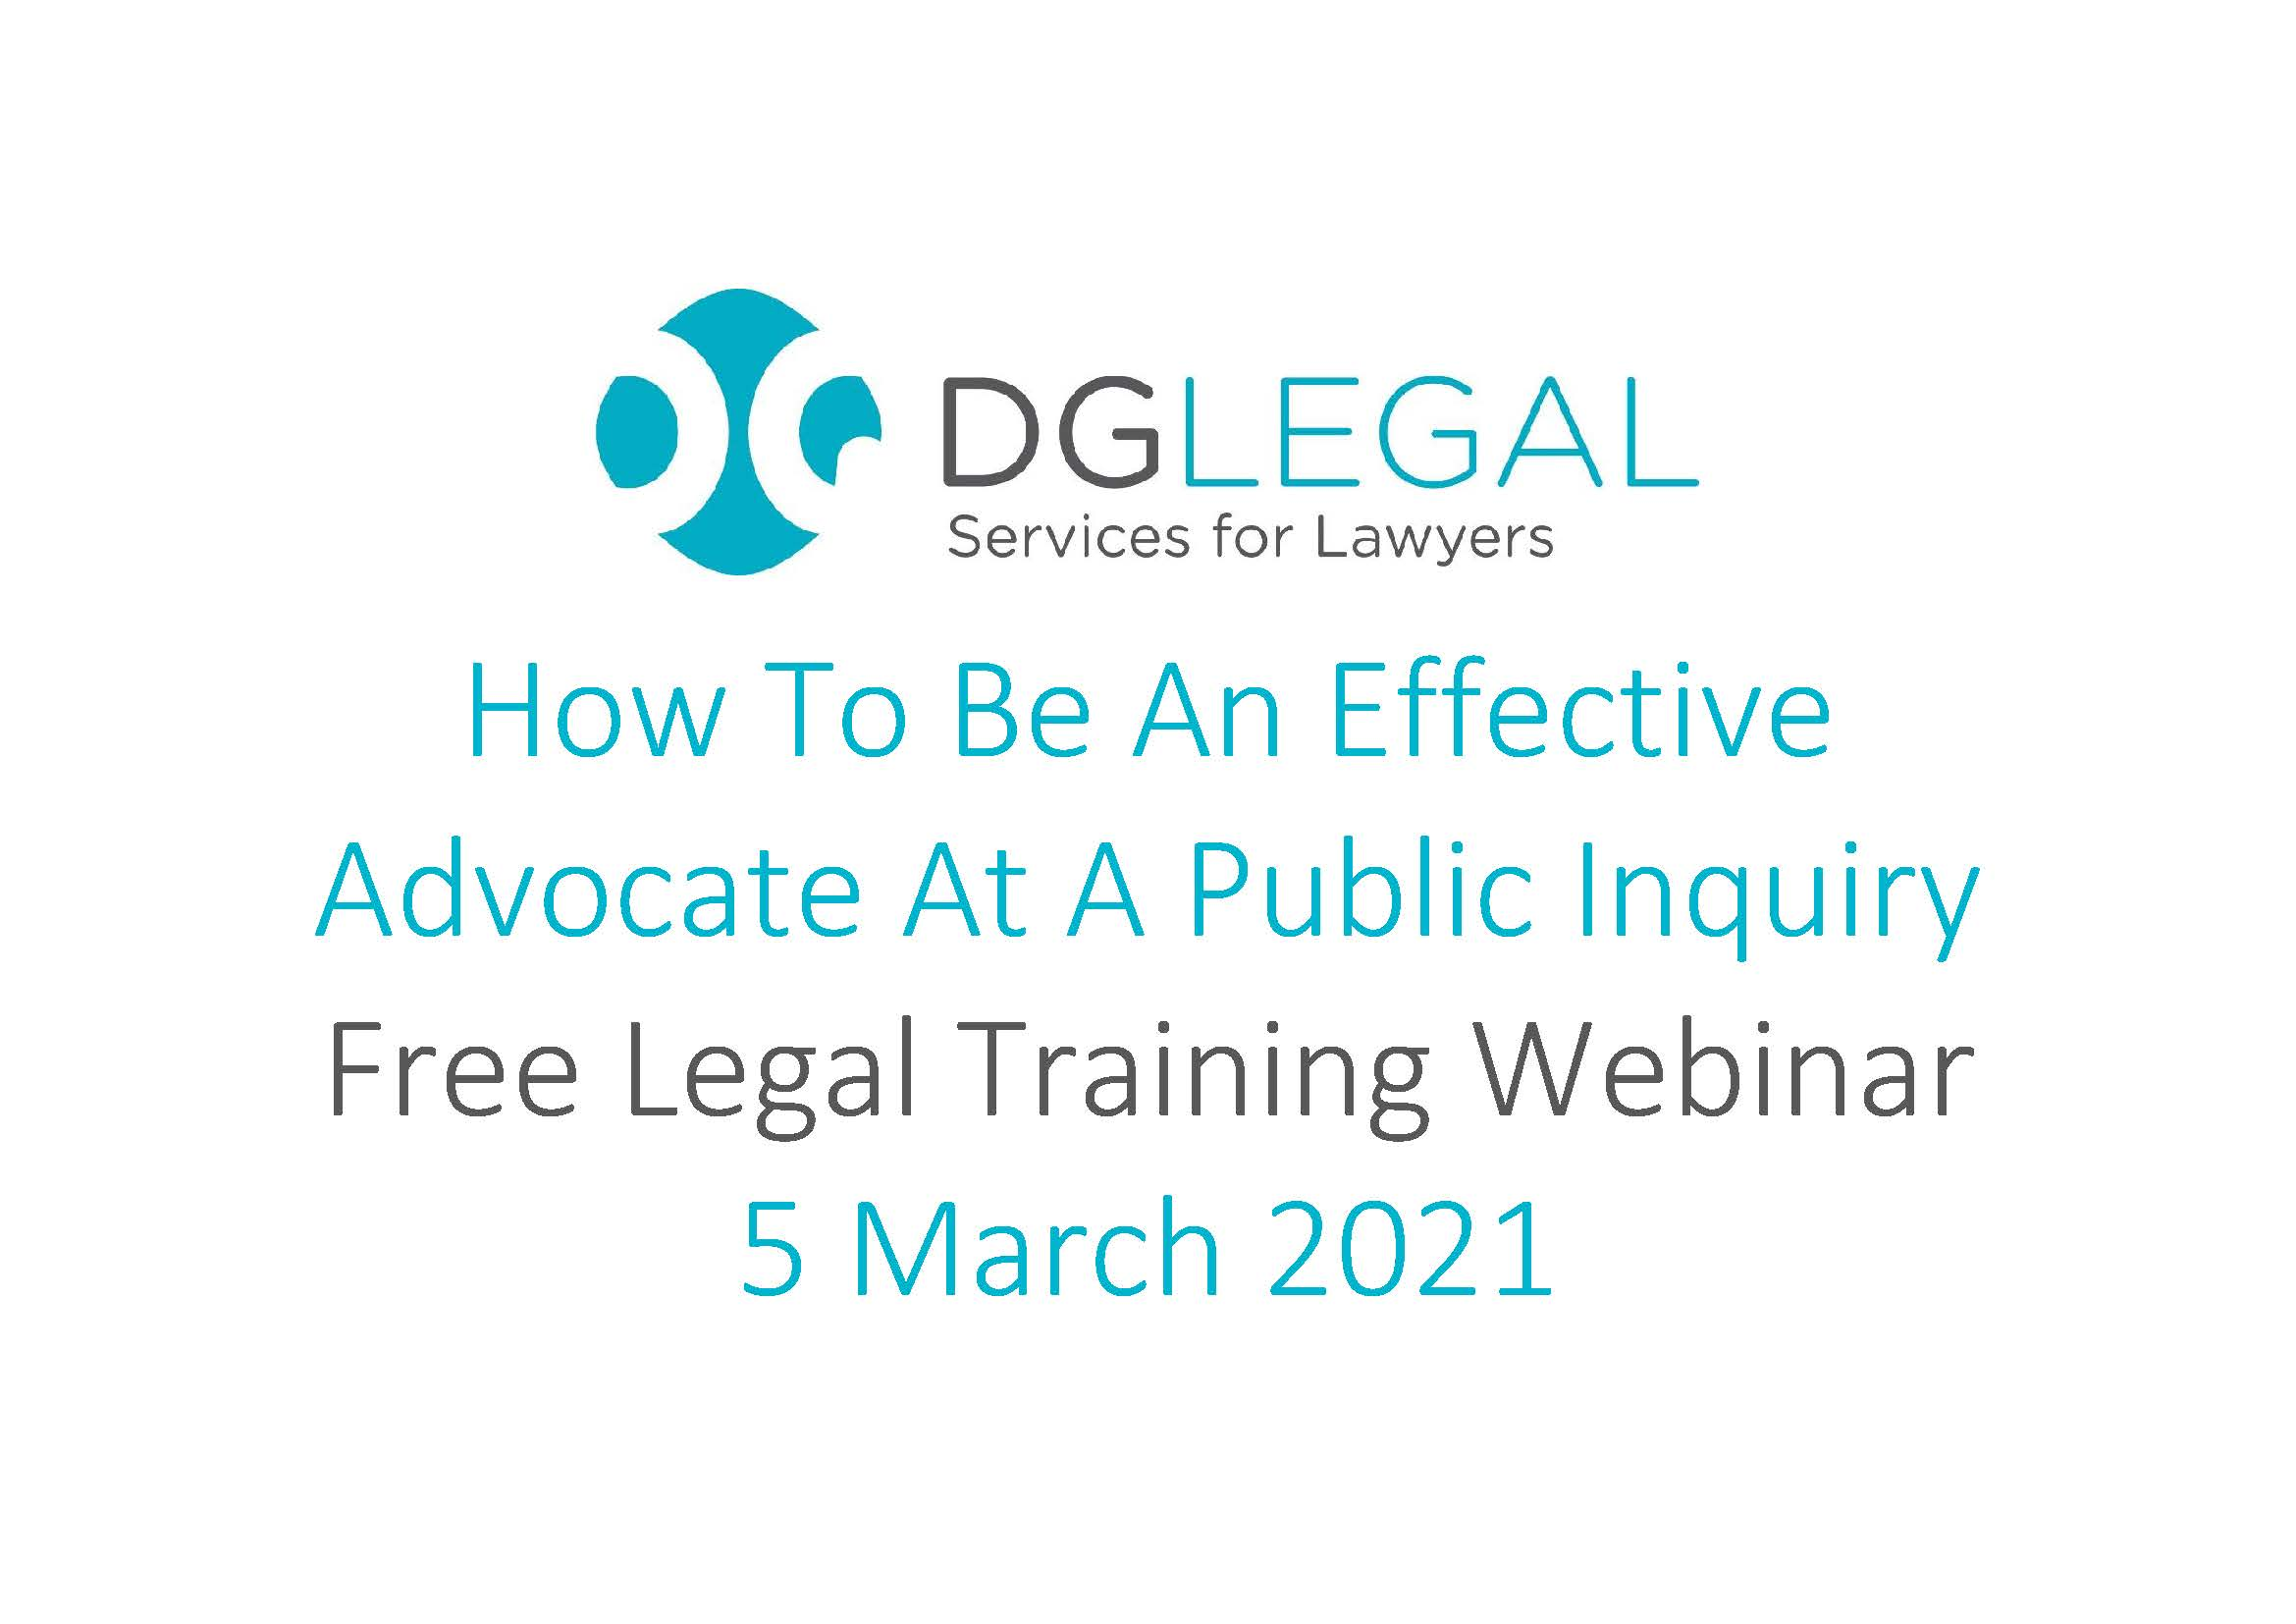 How To Be An Effective Advocate At A Public Inquiry